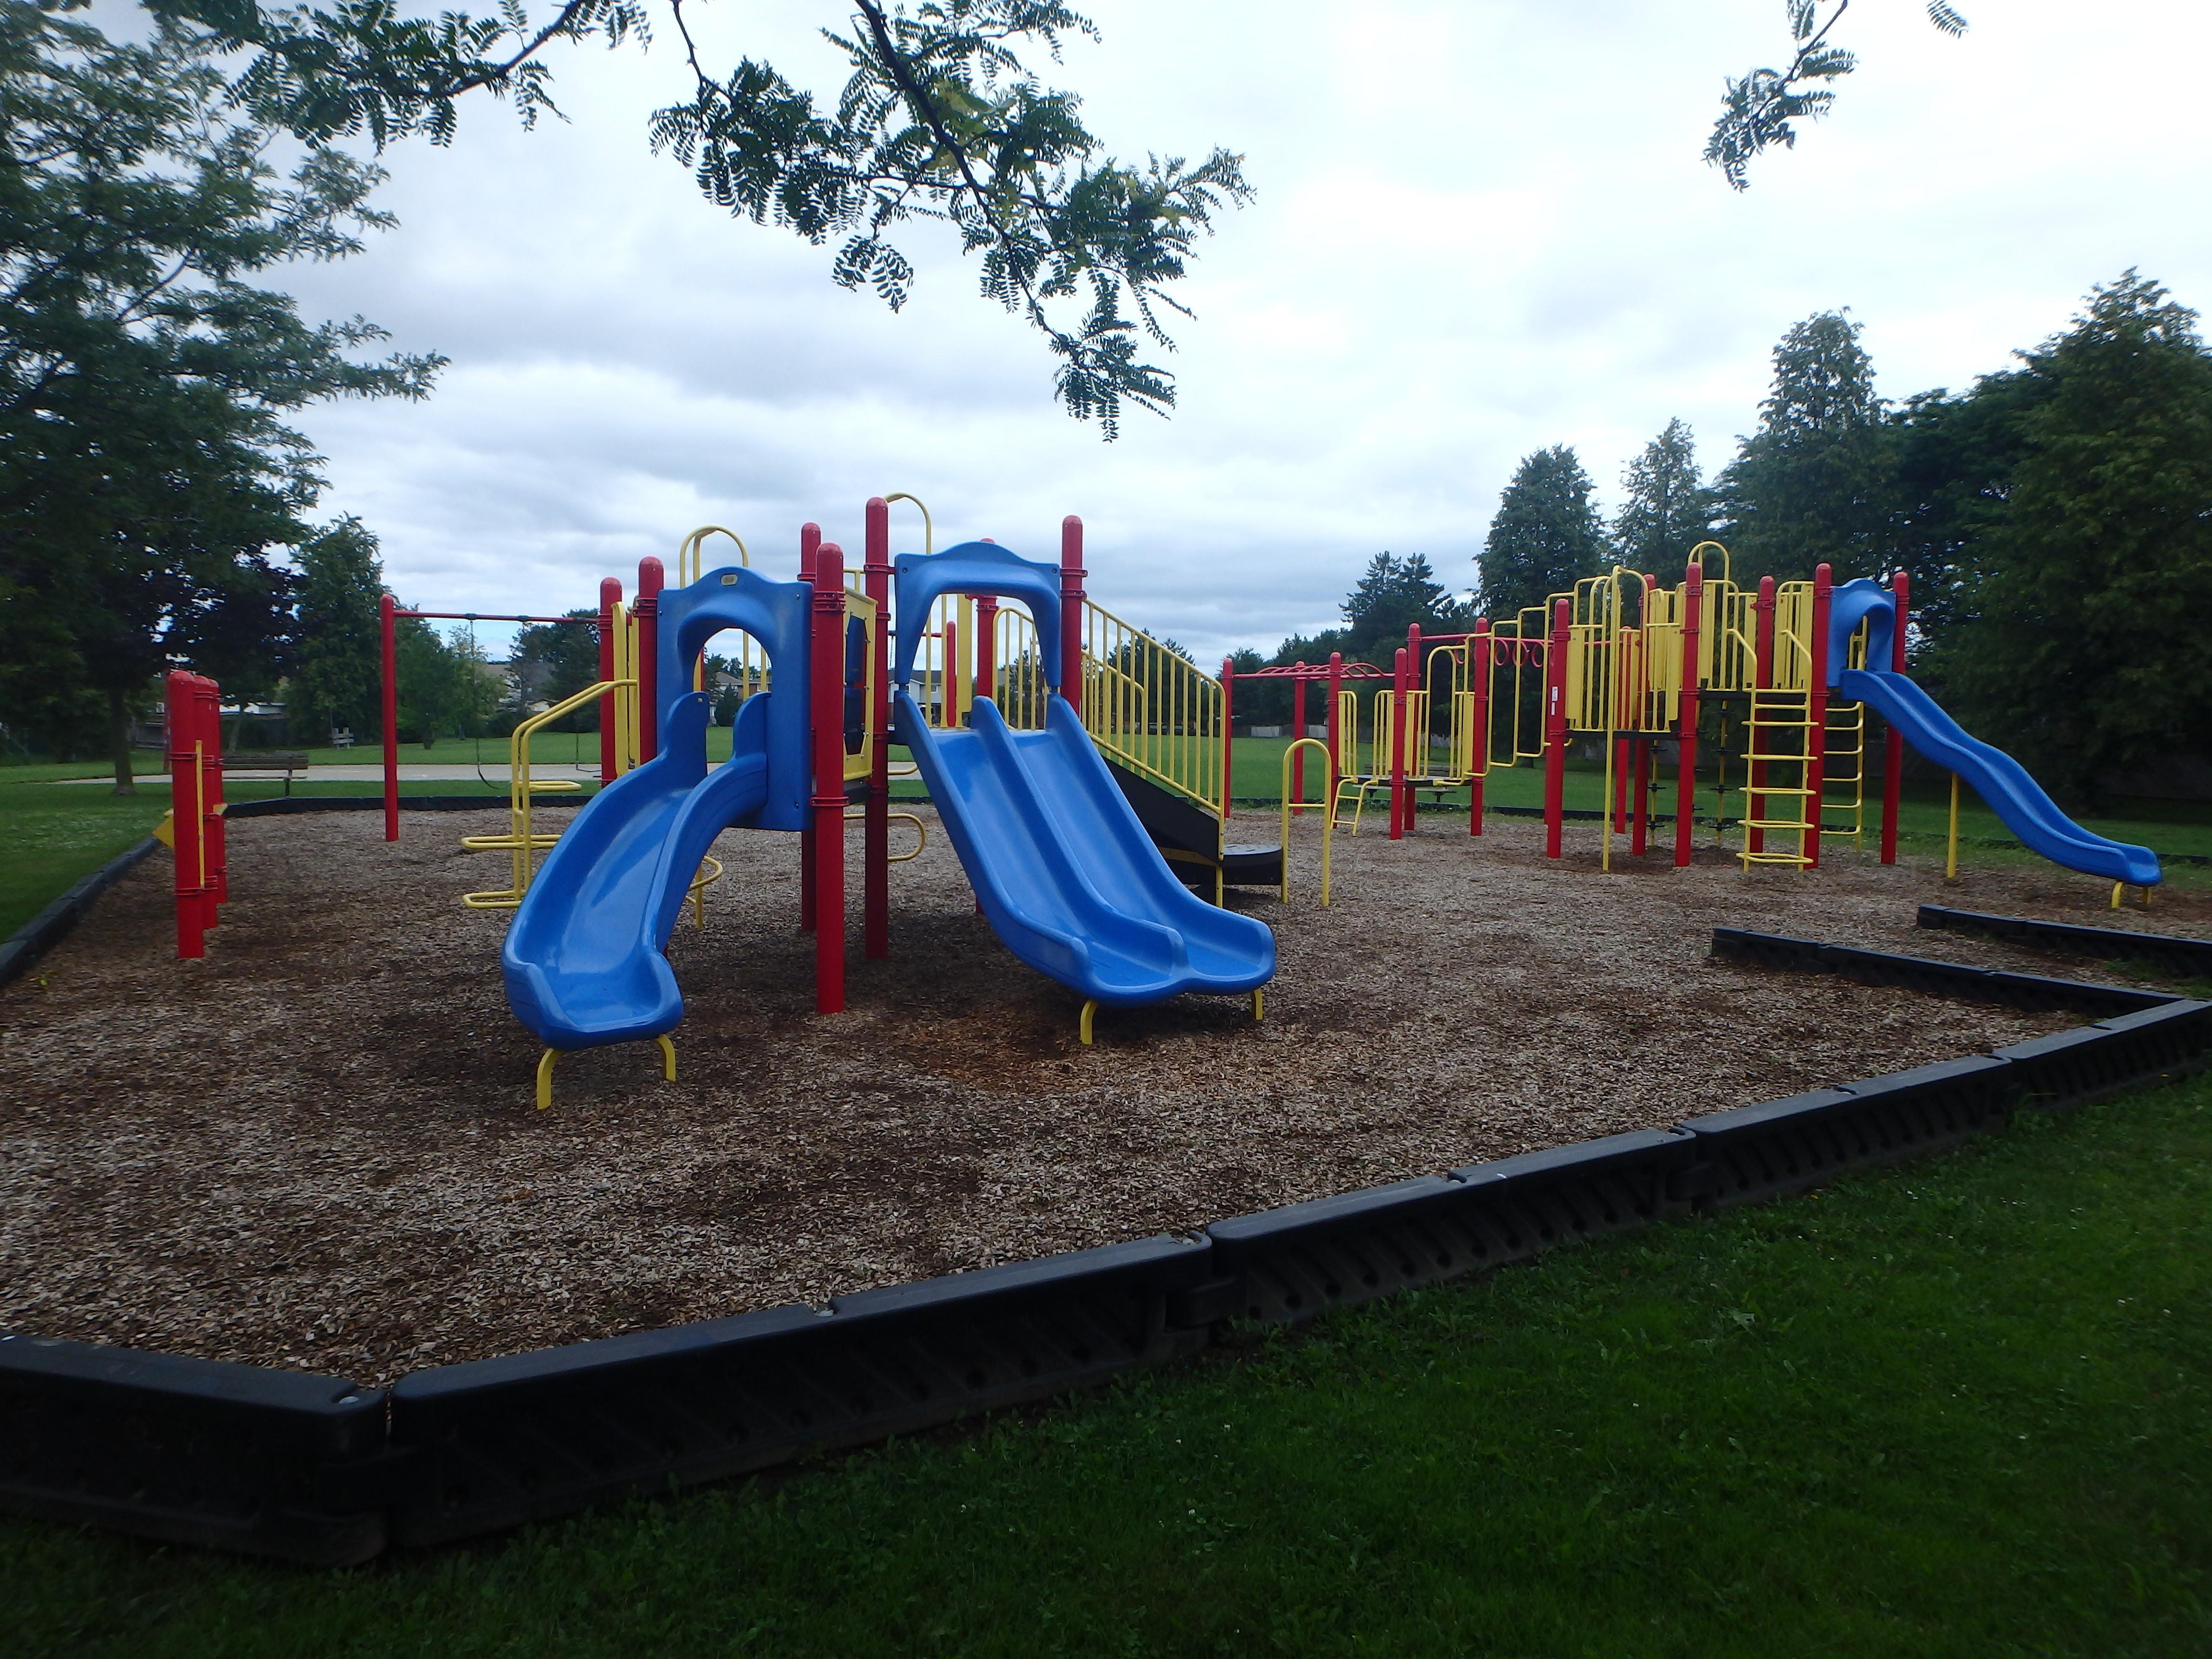 G:\!PARKS CEMETERIES FORESTRY AND HORTICULTURE\Parks-Inventory\Play-Equipment\Mountainview Park\Mountainview 2.JPG